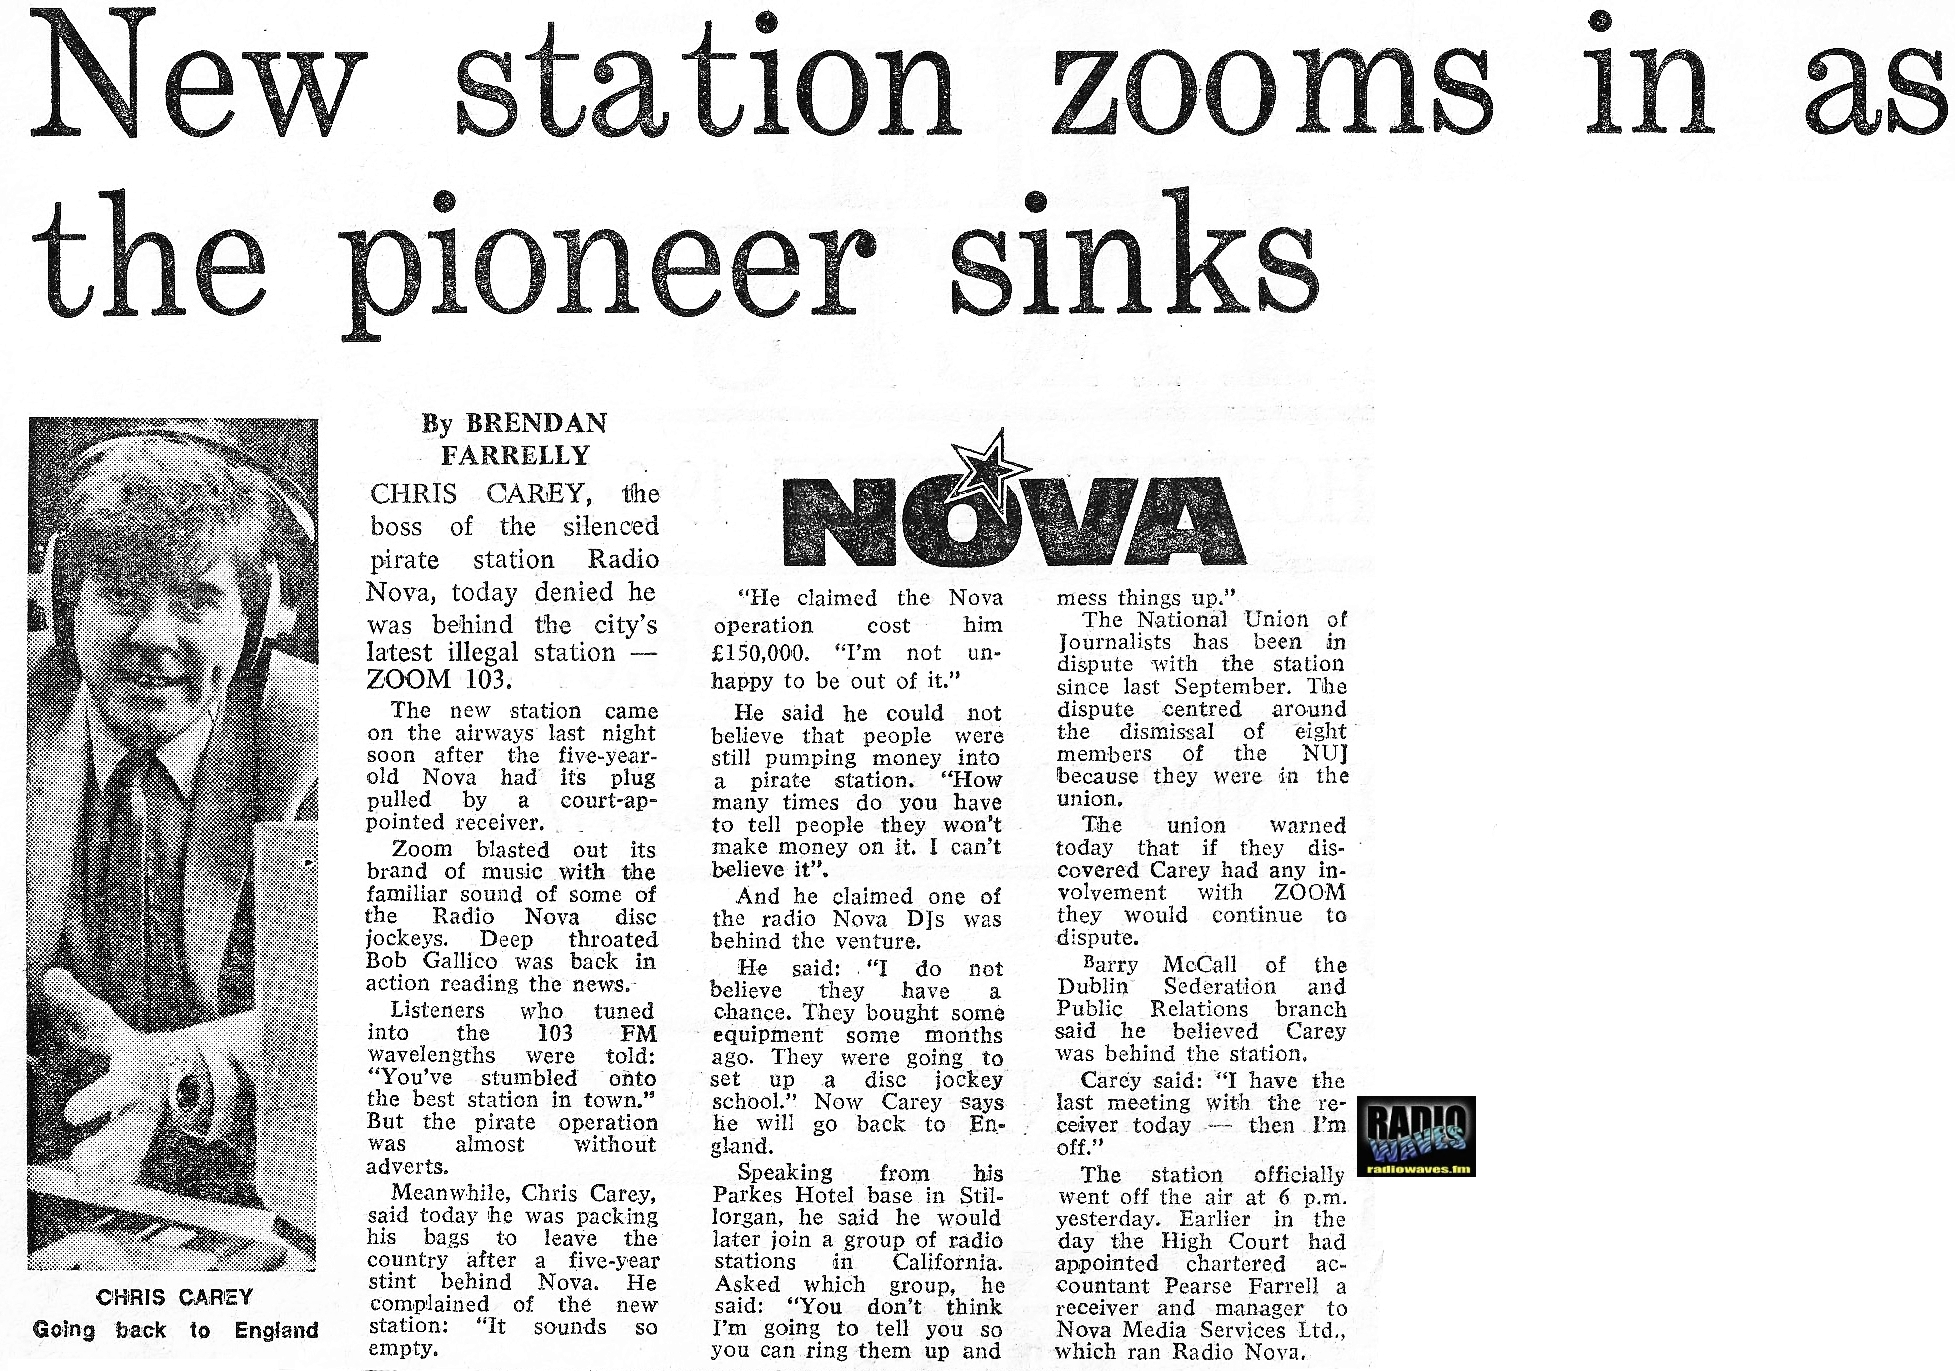 Having arrived on the air just as Radio Nova was forced to shut down the day before, Zoom 103 went fully live on March 20th 1986 with the exact same line-up as Radio Nova, all in the exact same slots. This recording features an hour of Tony McKenzie's show from just after the midday News, read by Bob Gallico.